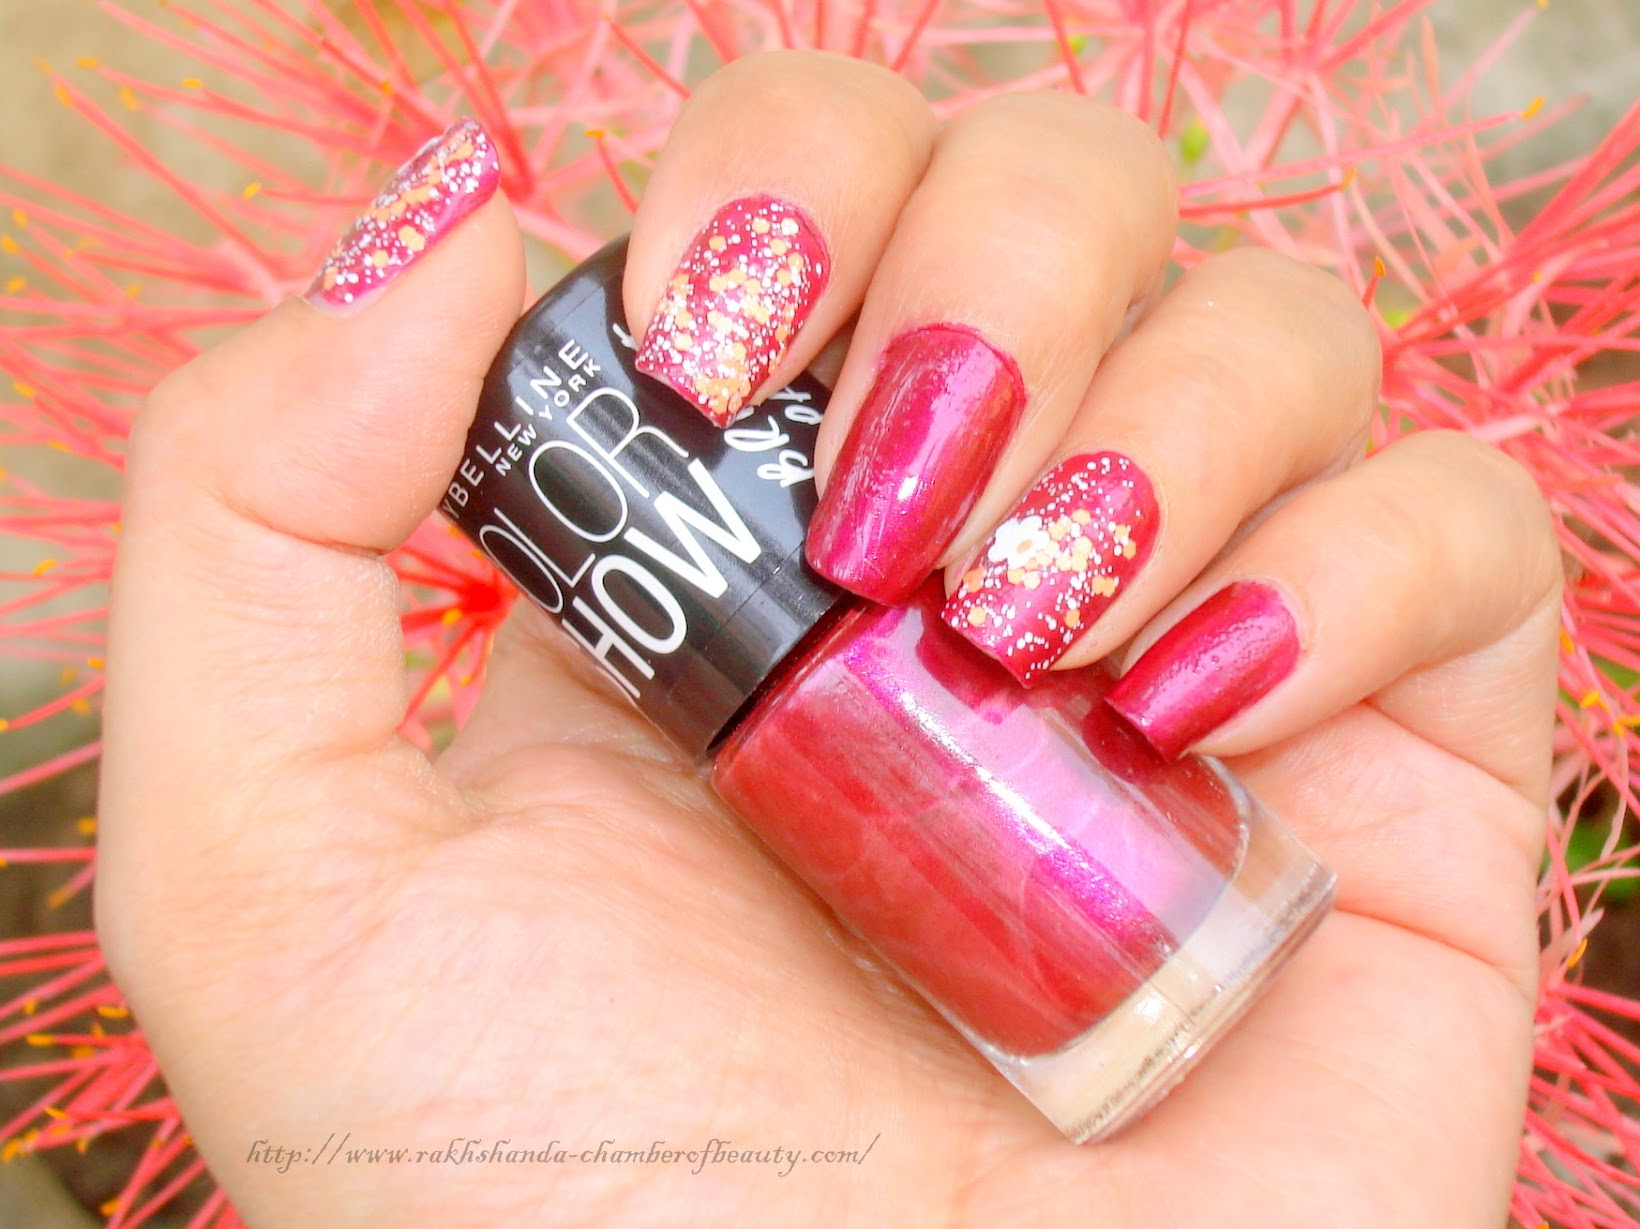 #SpringupyourSummer with Maybelline NY Rebel Bouquet Collection- Review, NOTD, price, Go Graffiti Color Show, Chamber of Beauty